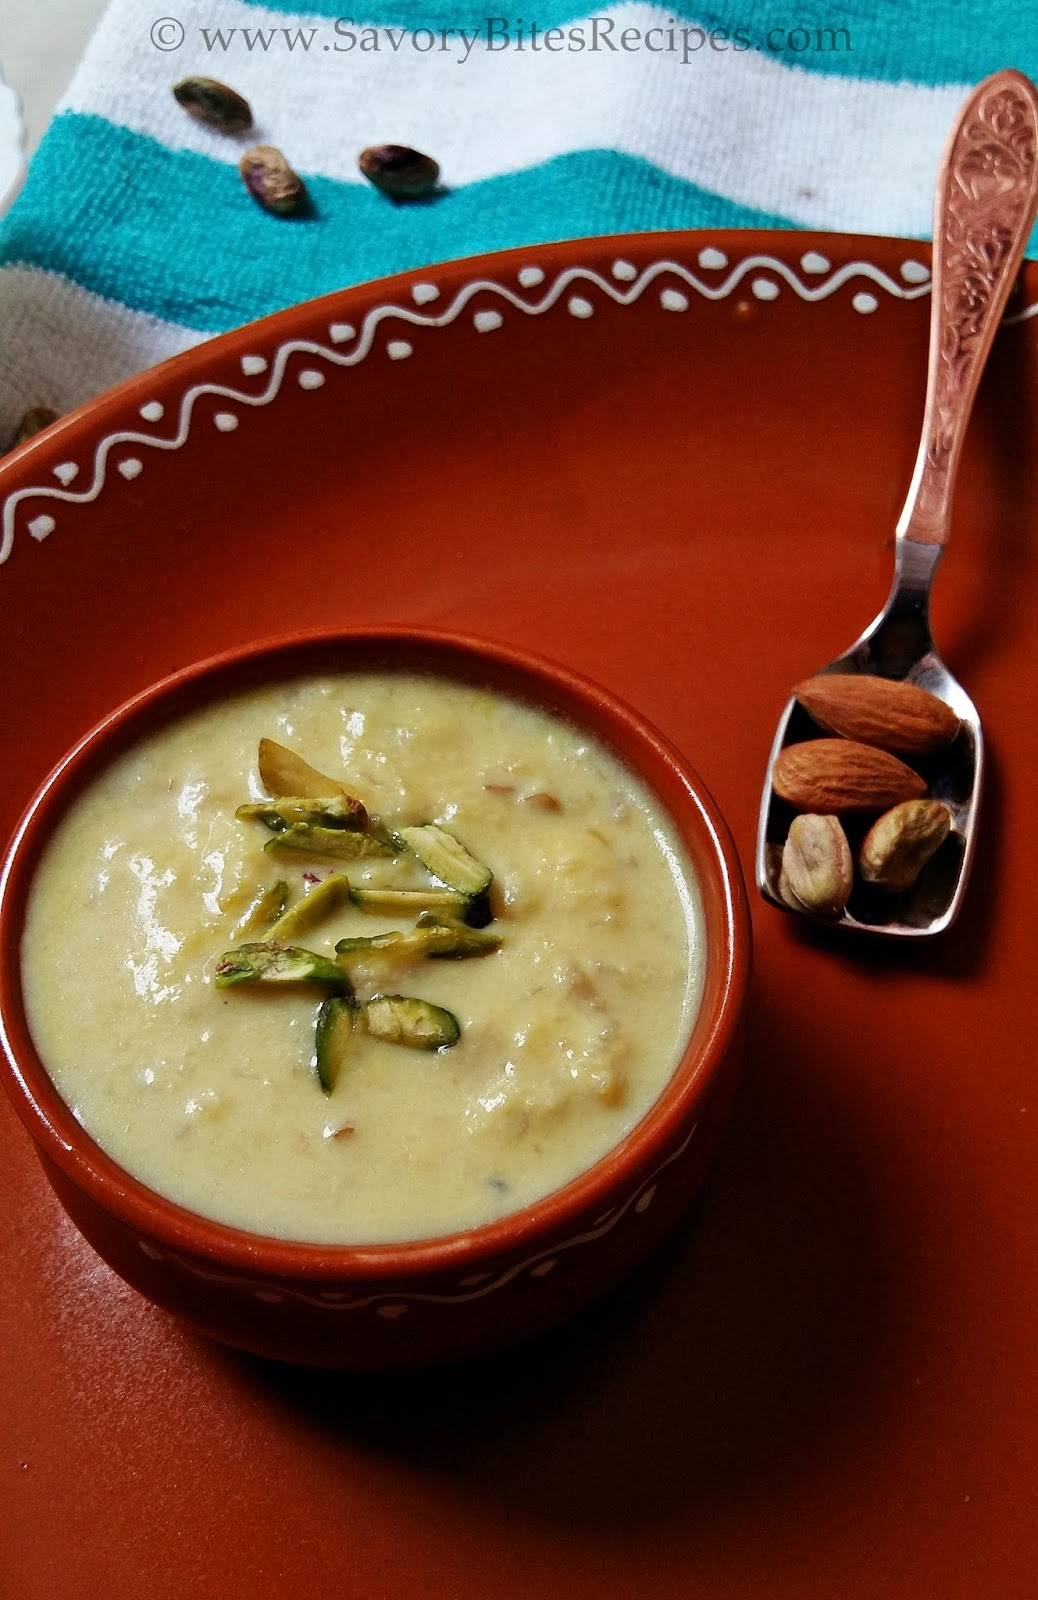 Apple Mawa Kheer Holi Recipe Holi Festive Recipe Traditional Indian Kheer